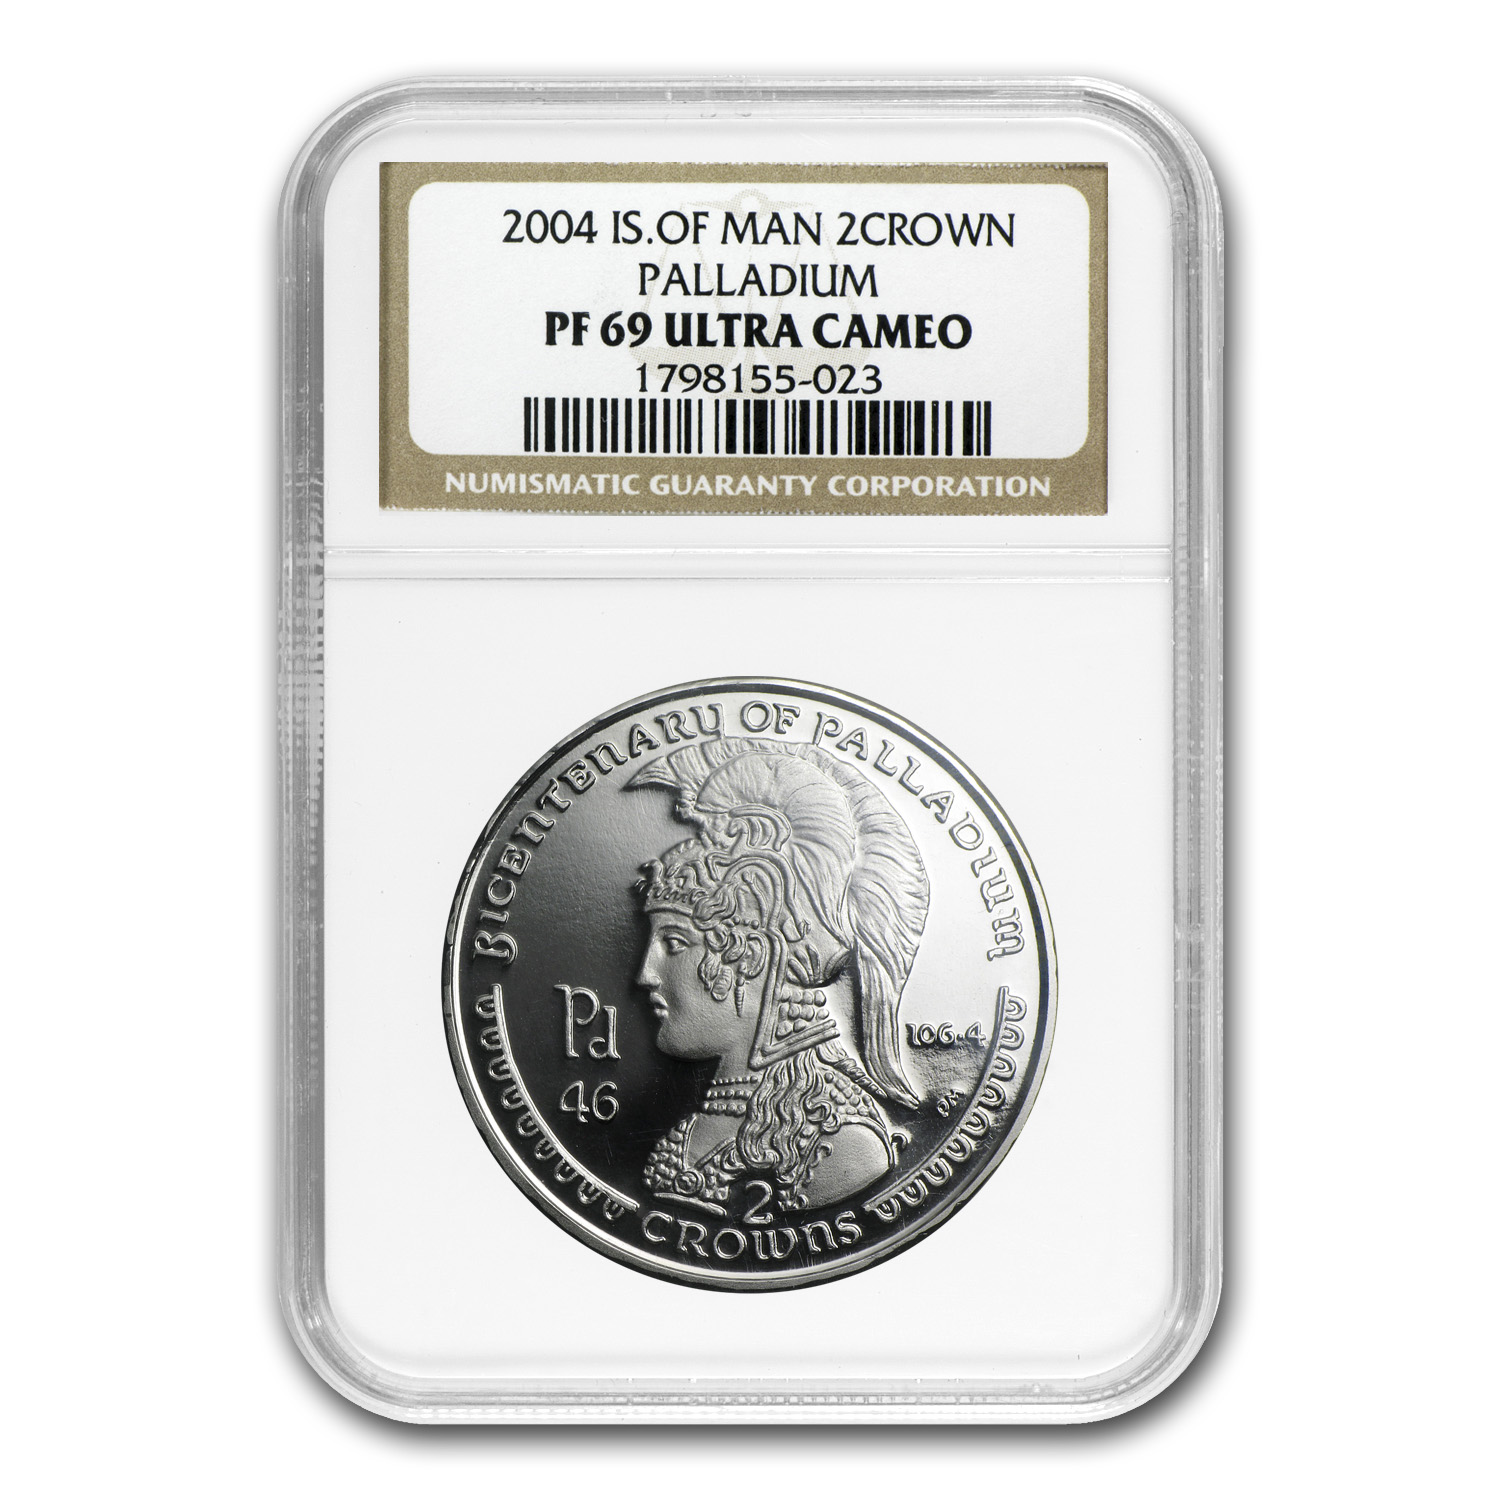 2004 2 oz Isle of Man Palladium 2 Crown PF-69 UCAM NGC